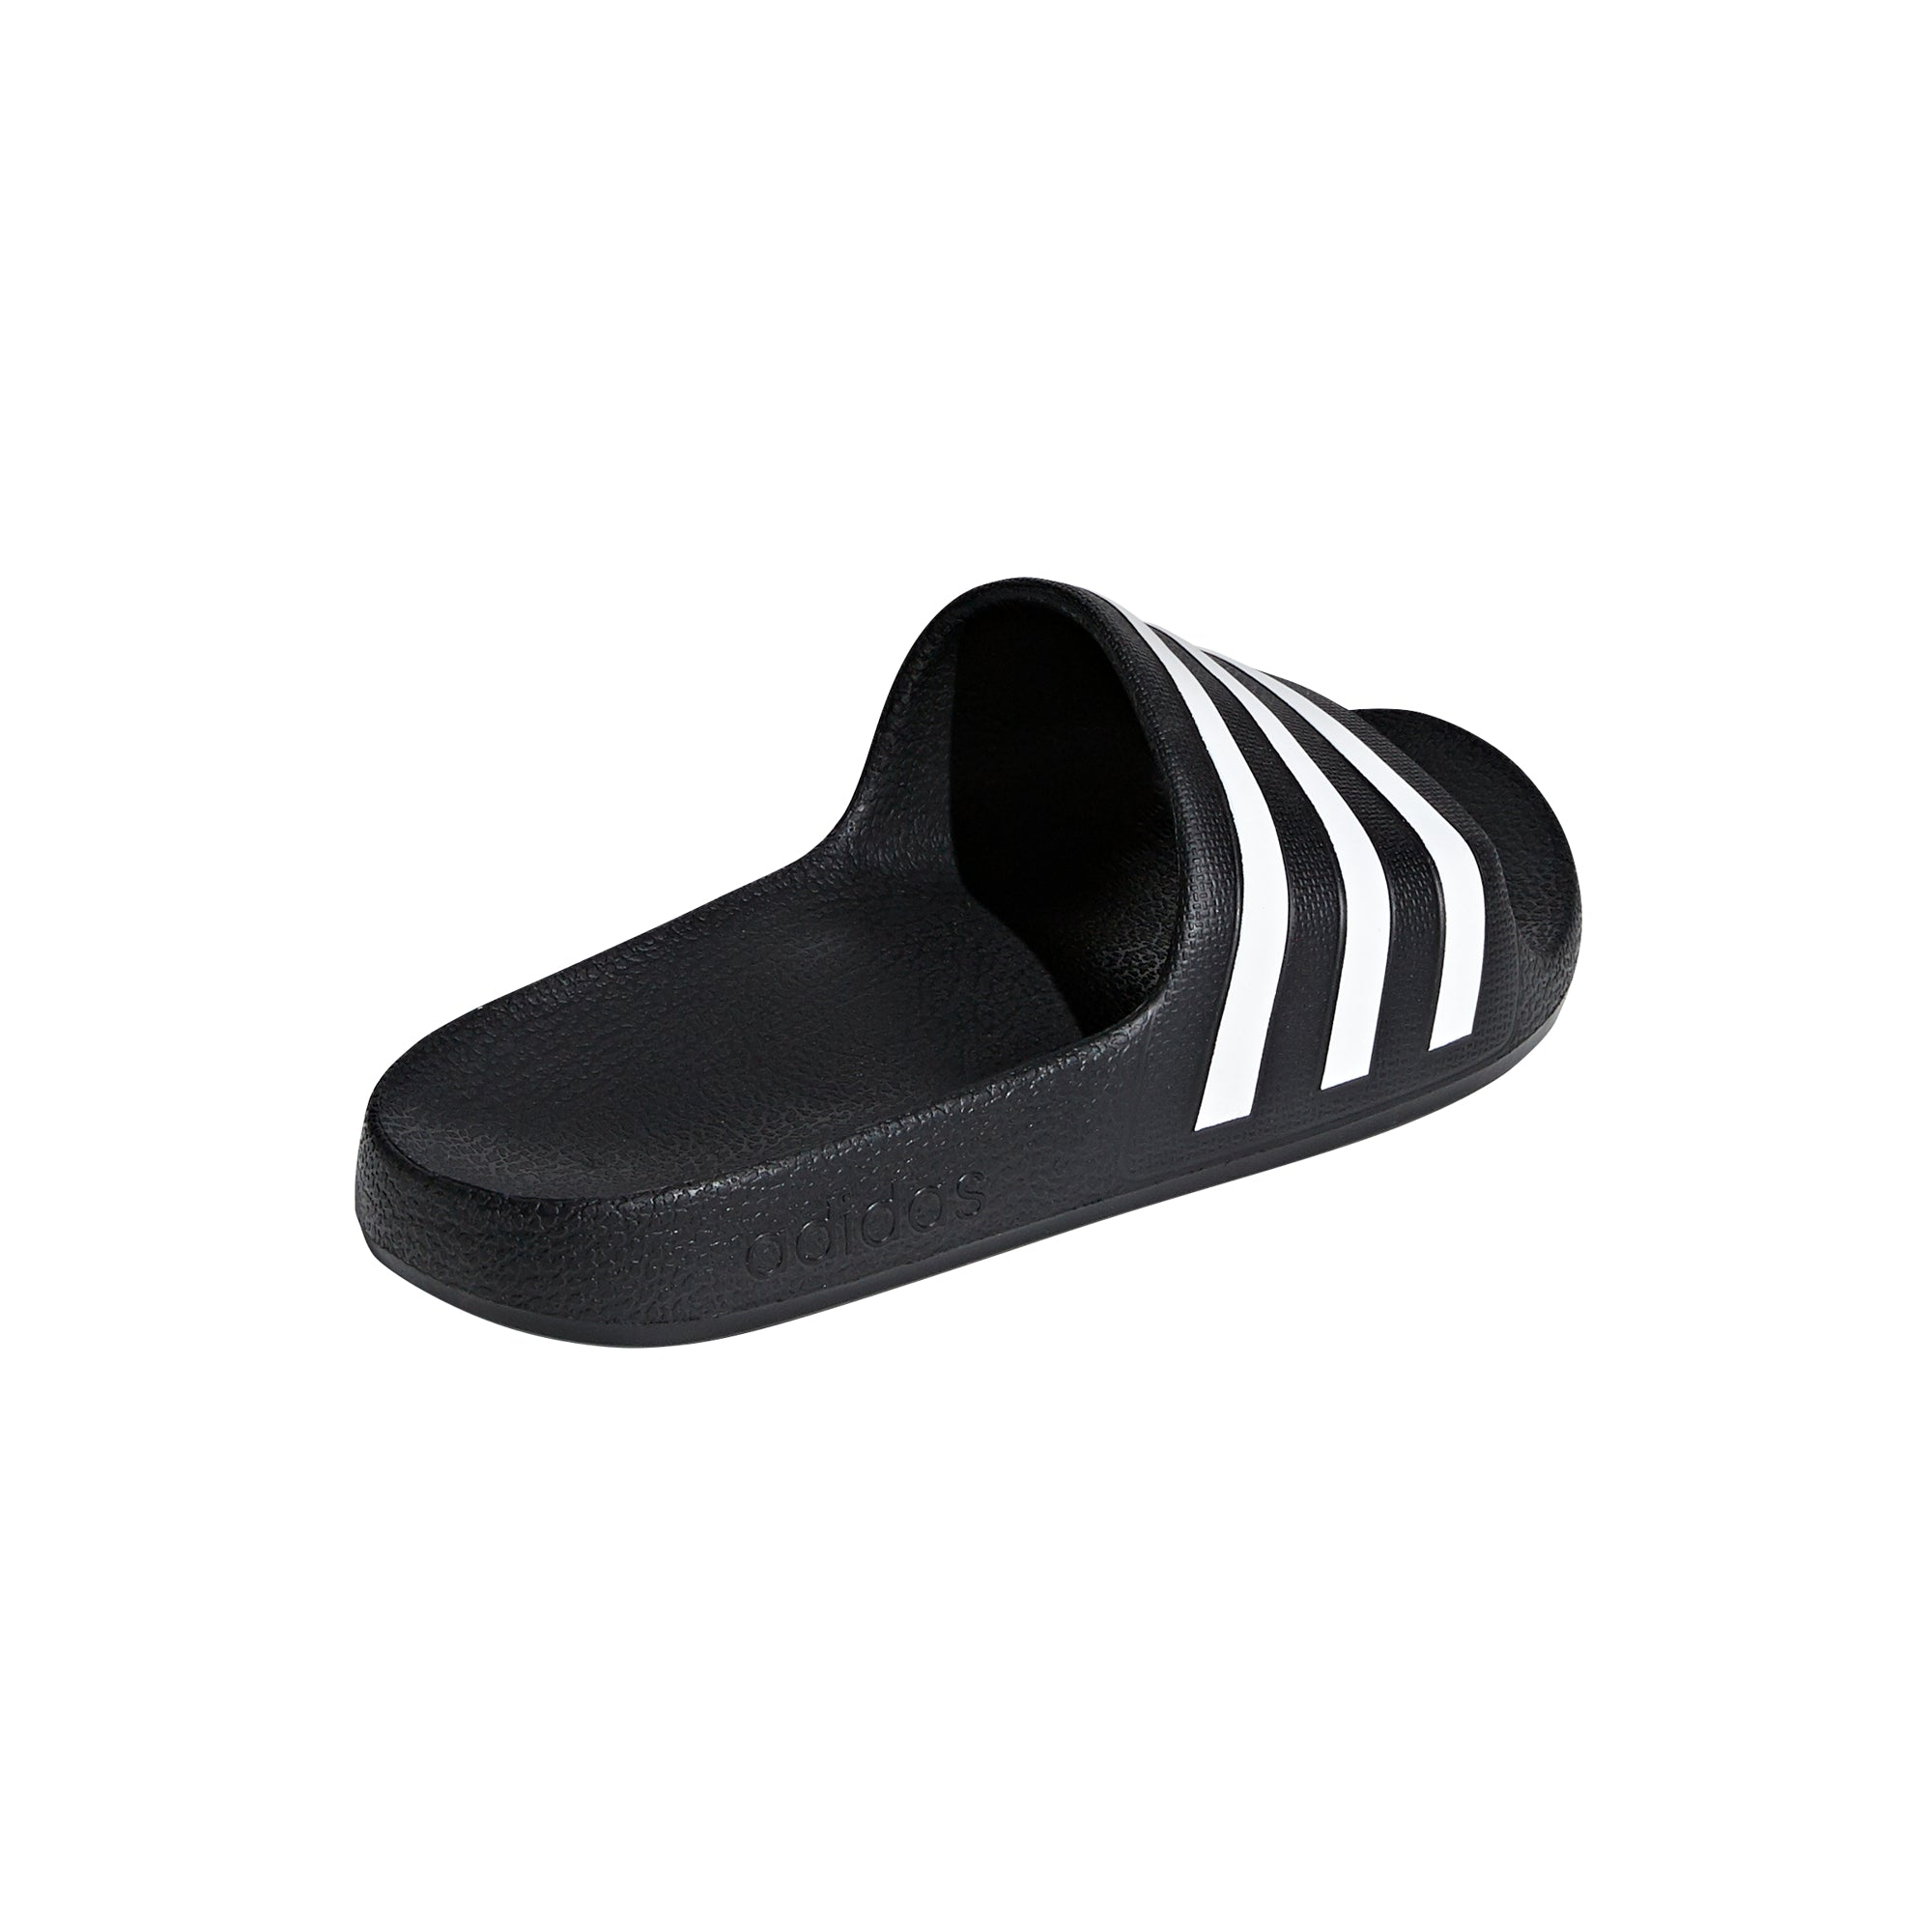 official photos 7c646 aff2e adidas adilette aqua black shoes